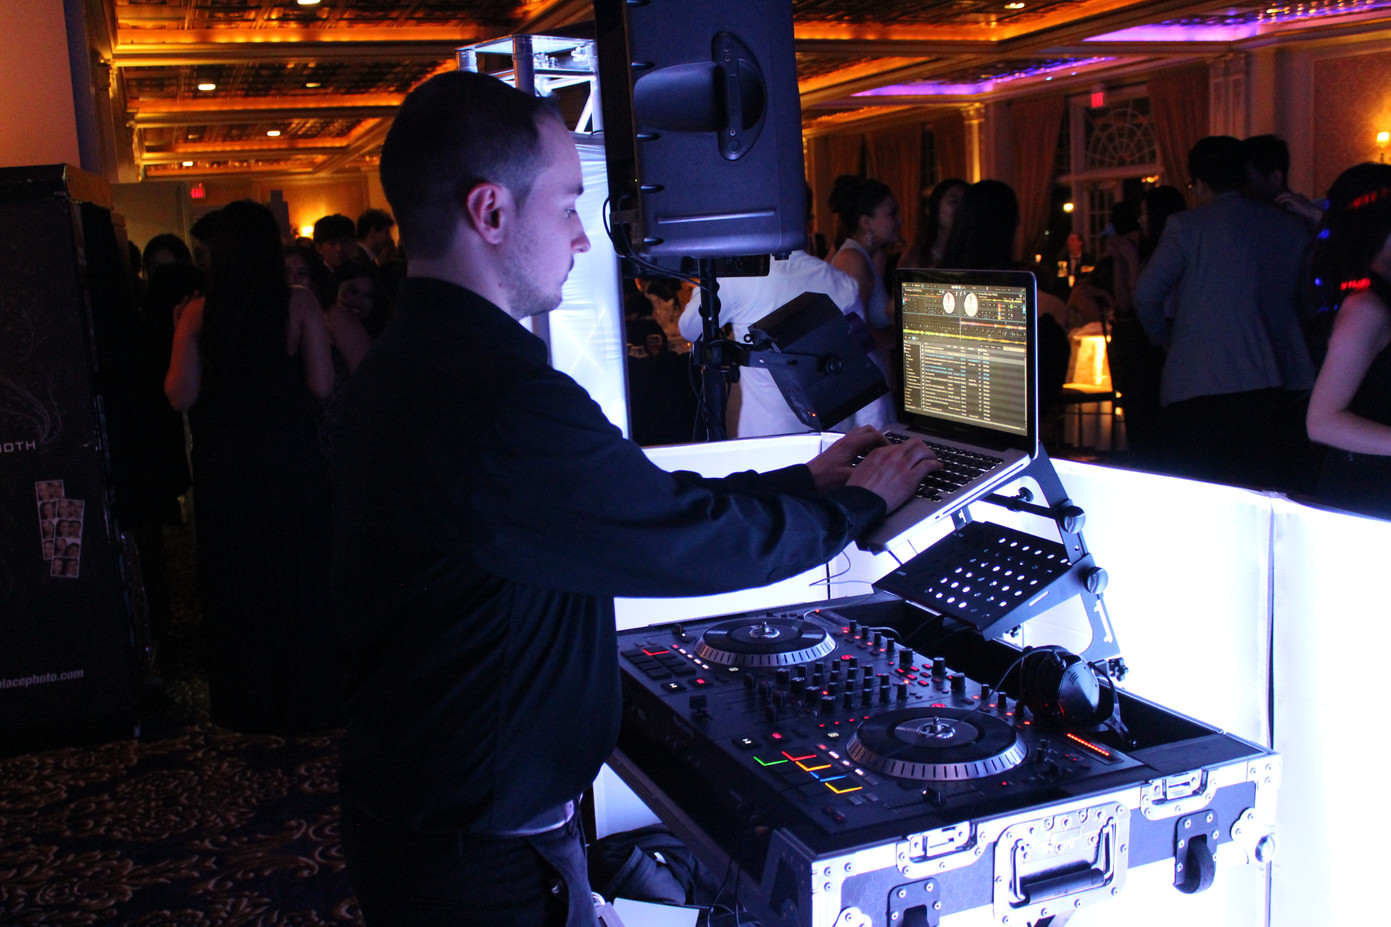 Disk-Jockey-For-Party.jpg